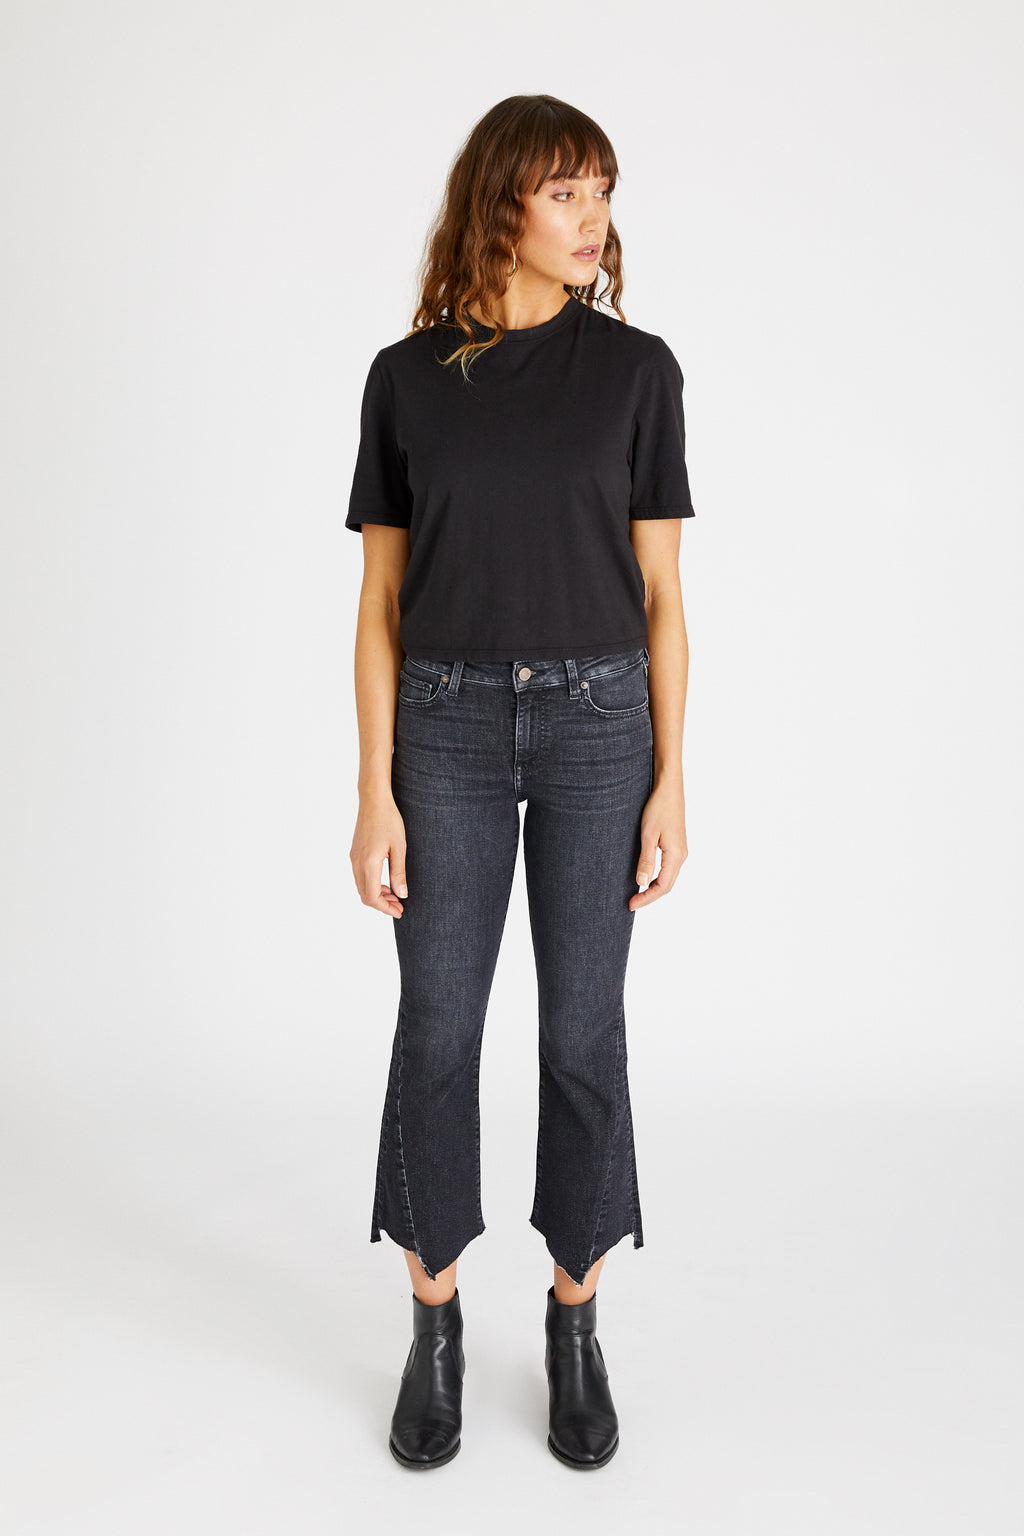 Micki Crop Flare - Dark Pool